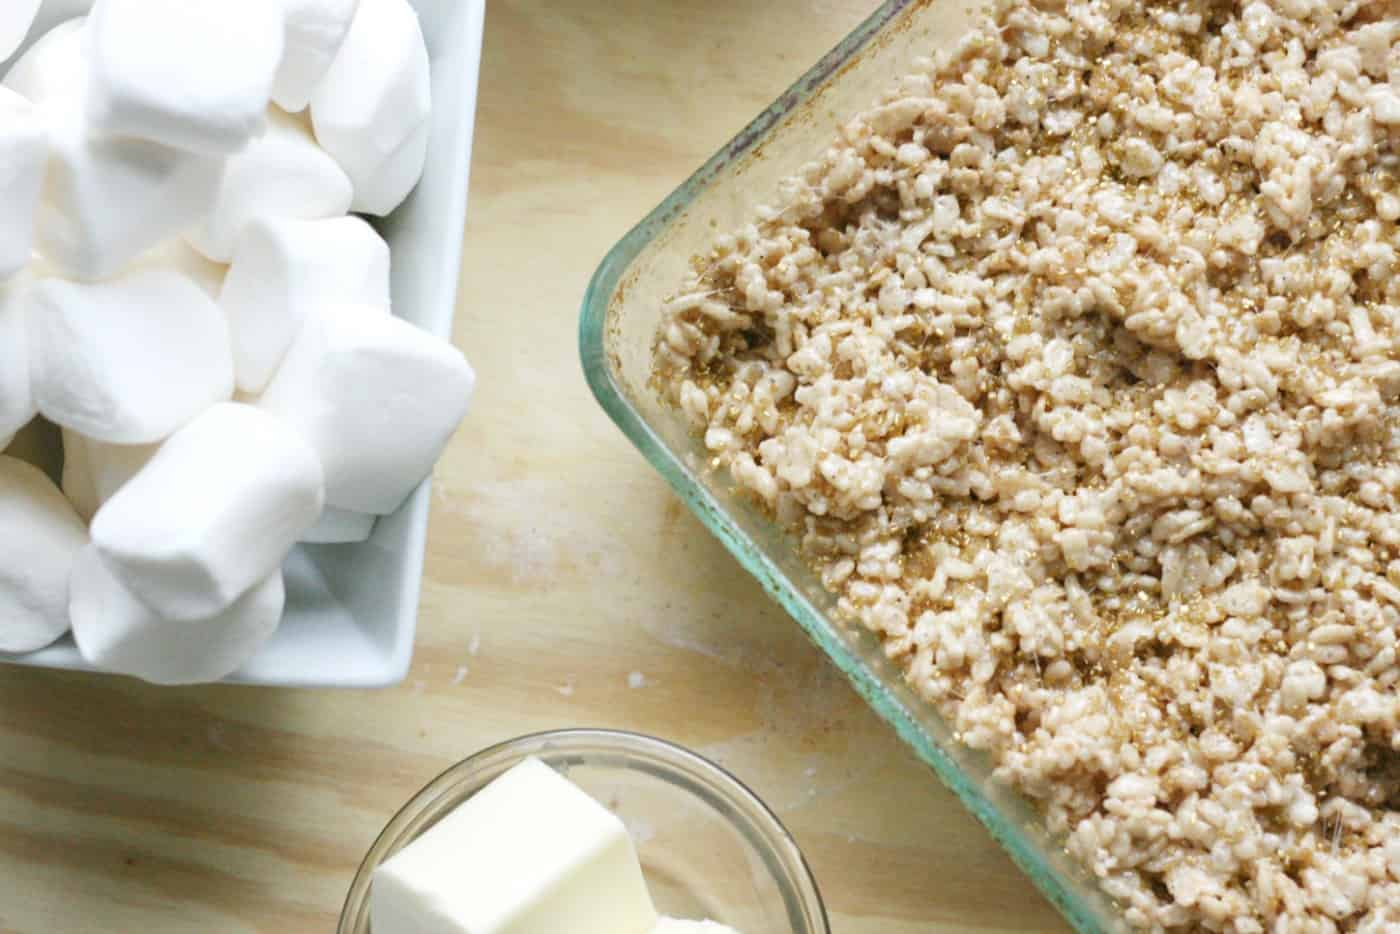 Marshmallows, butter, and rice krispies pressed into a glass pan